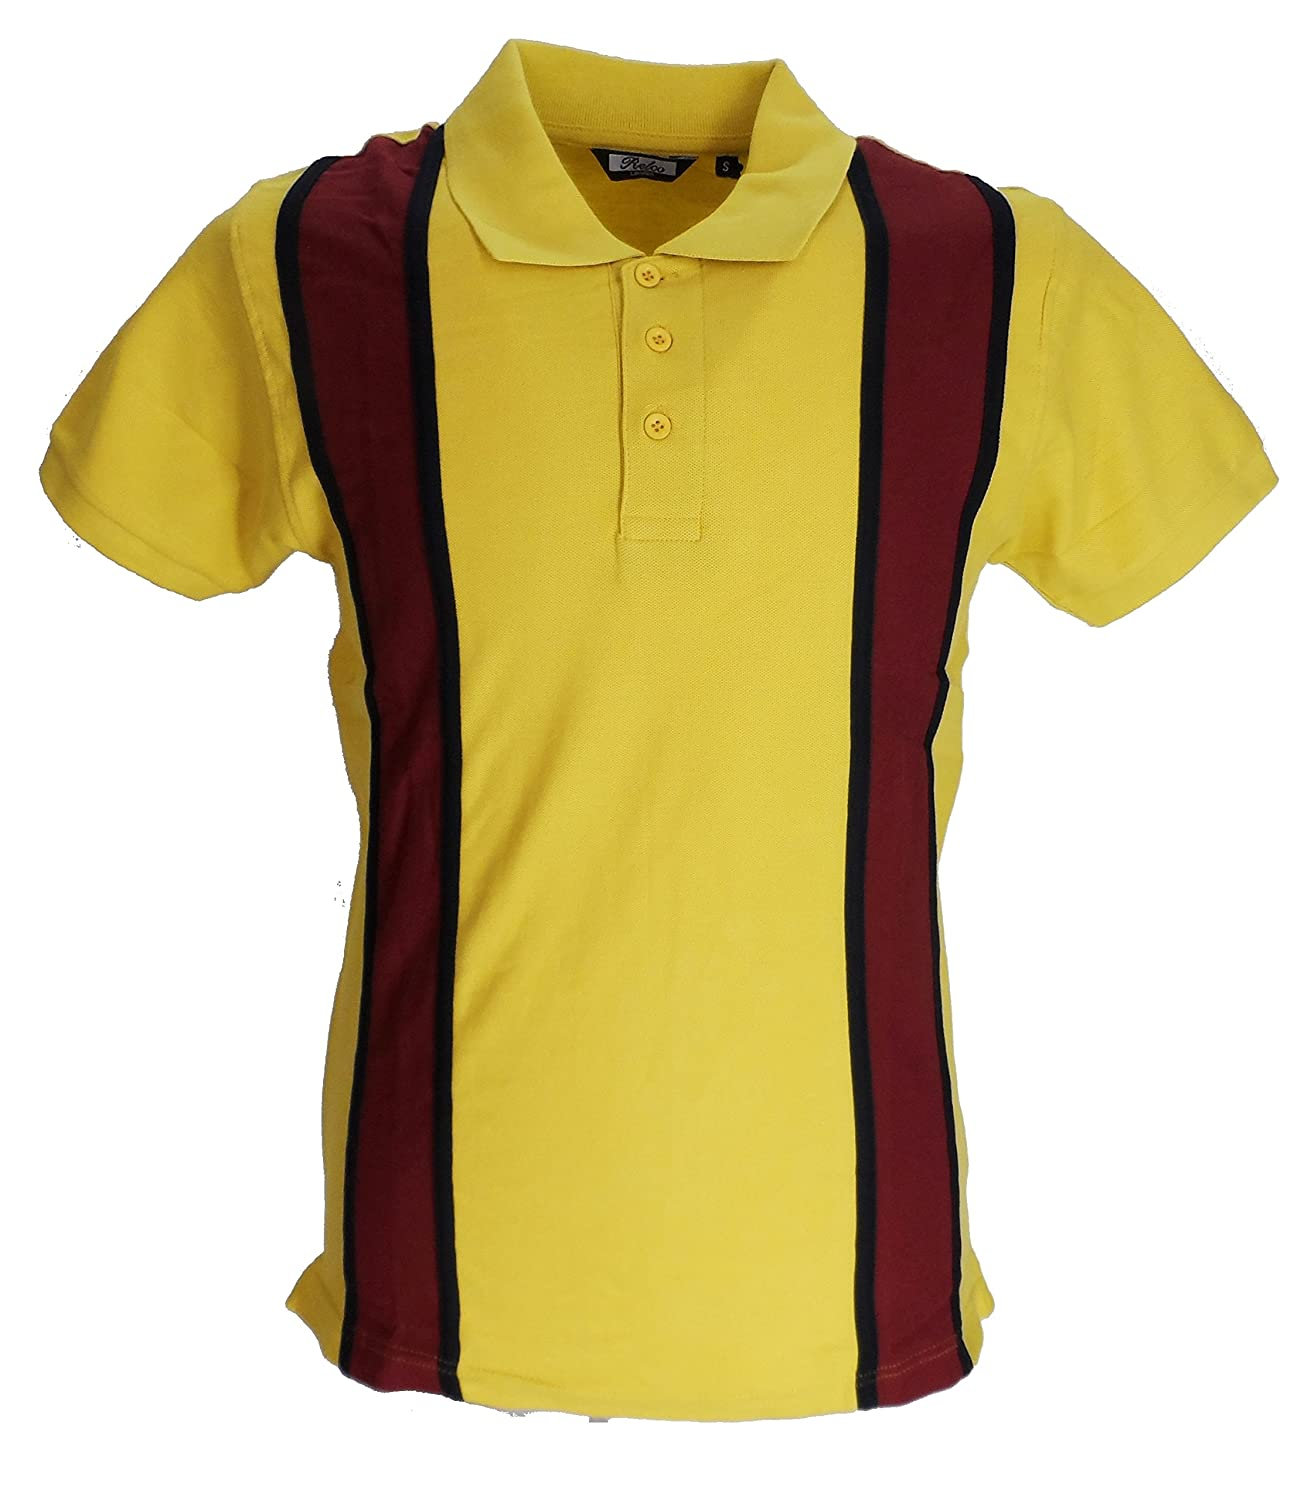 Mens Vintage Shirts – Casual, Dress, T-shirts, Polos Relco Mens Striped Vintage Polo Shirts Mustard/Burgundy £24.99 AT vintagedancer.com